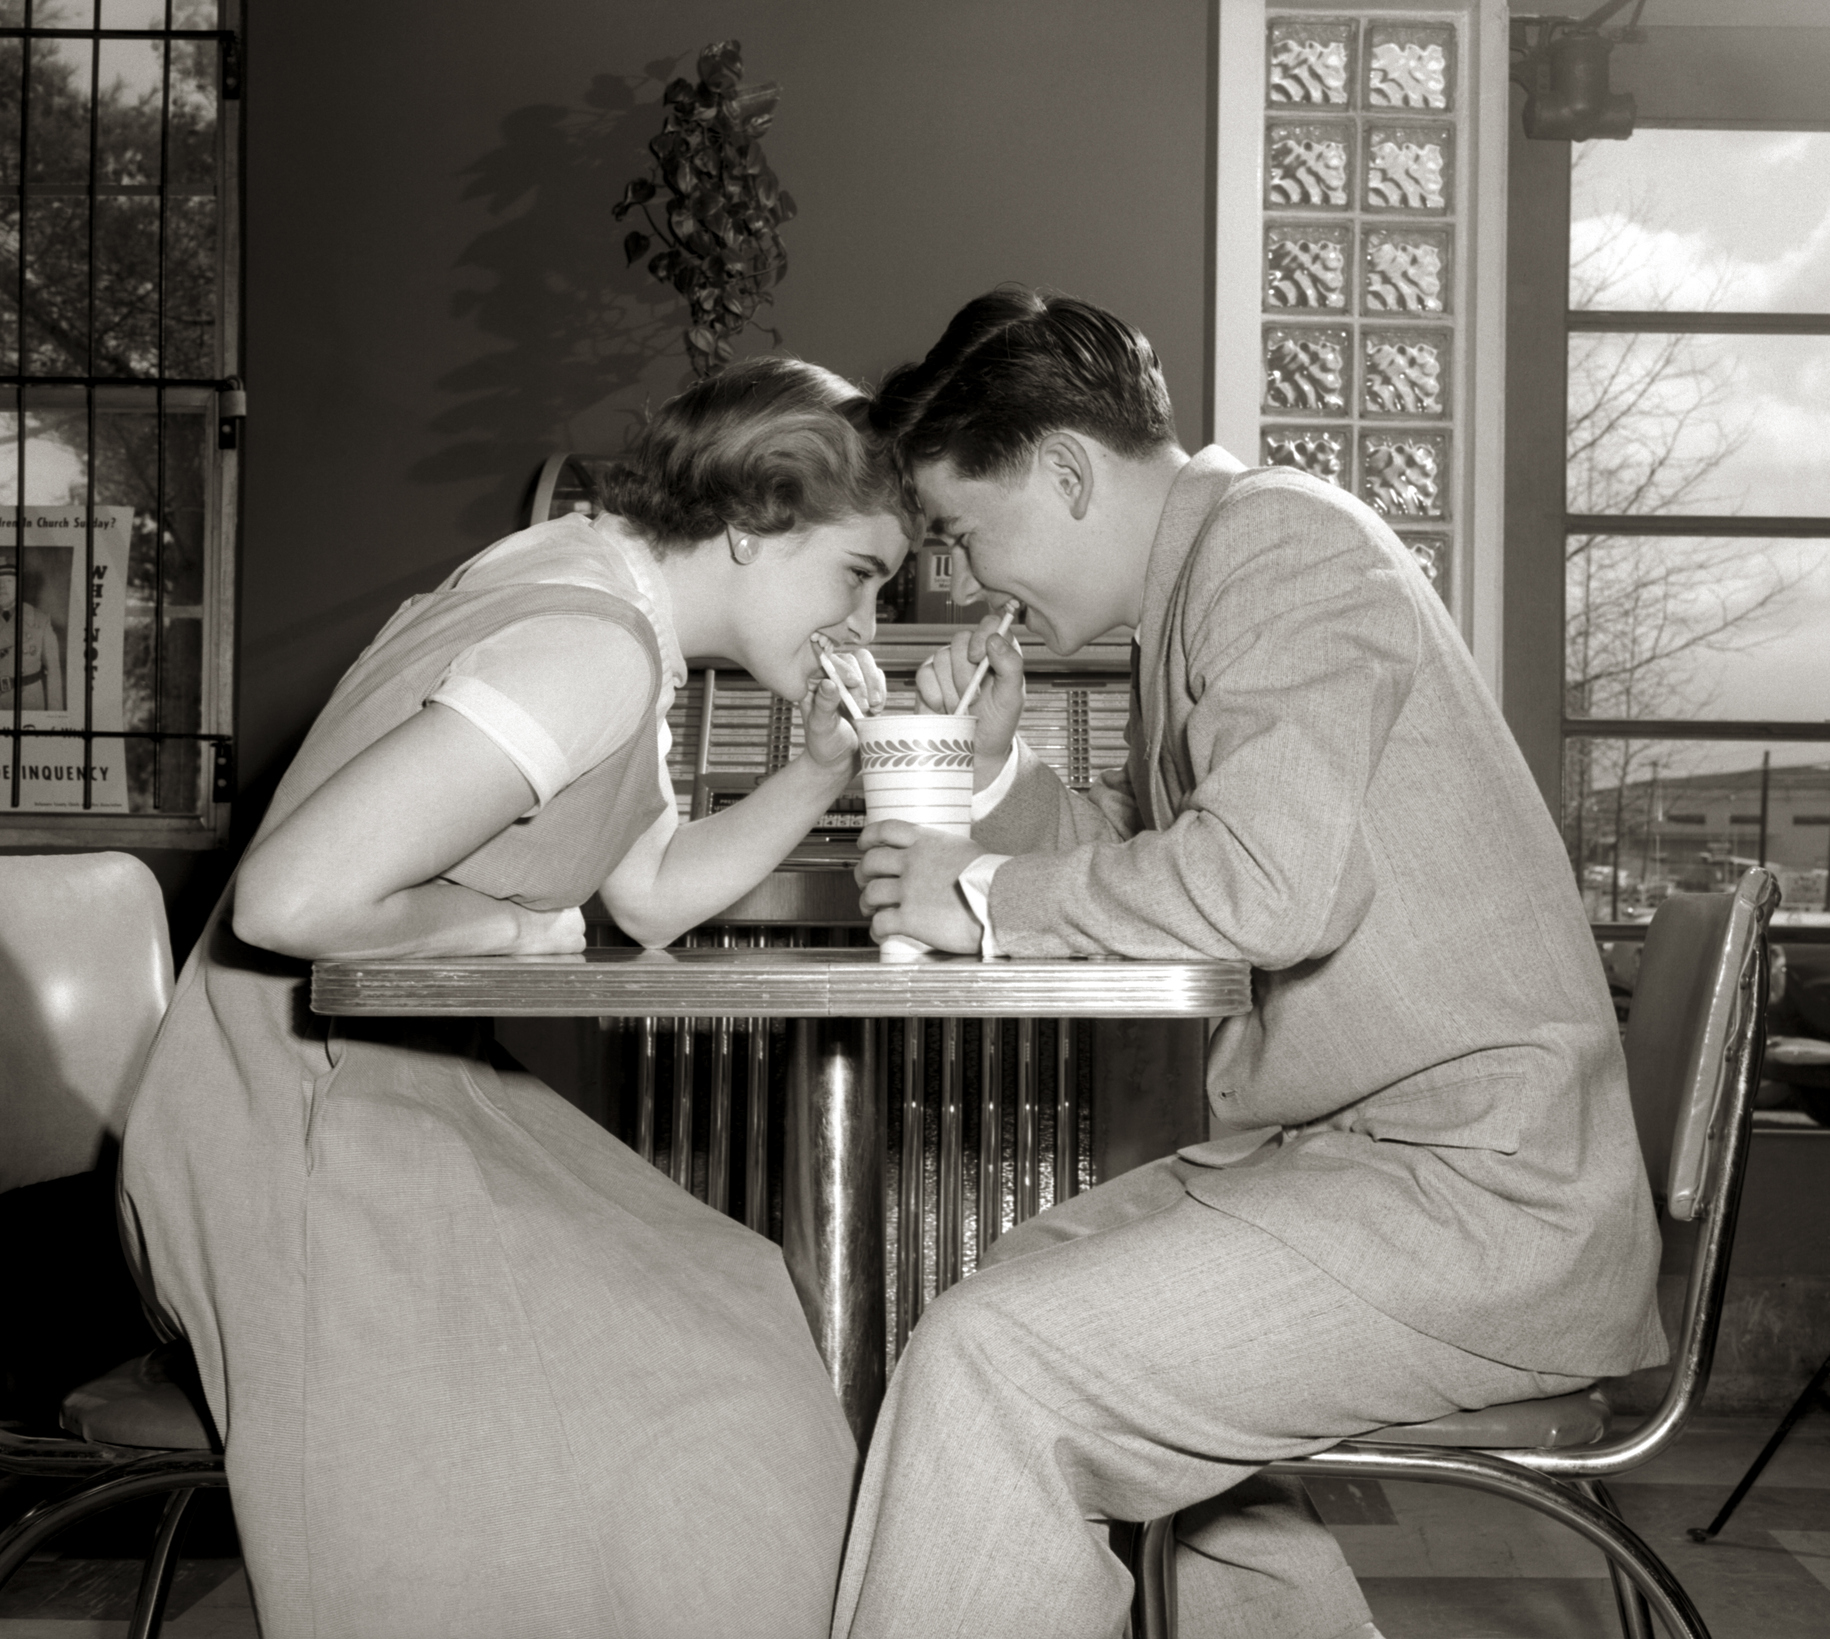 Dating in the 1950s and 1960s